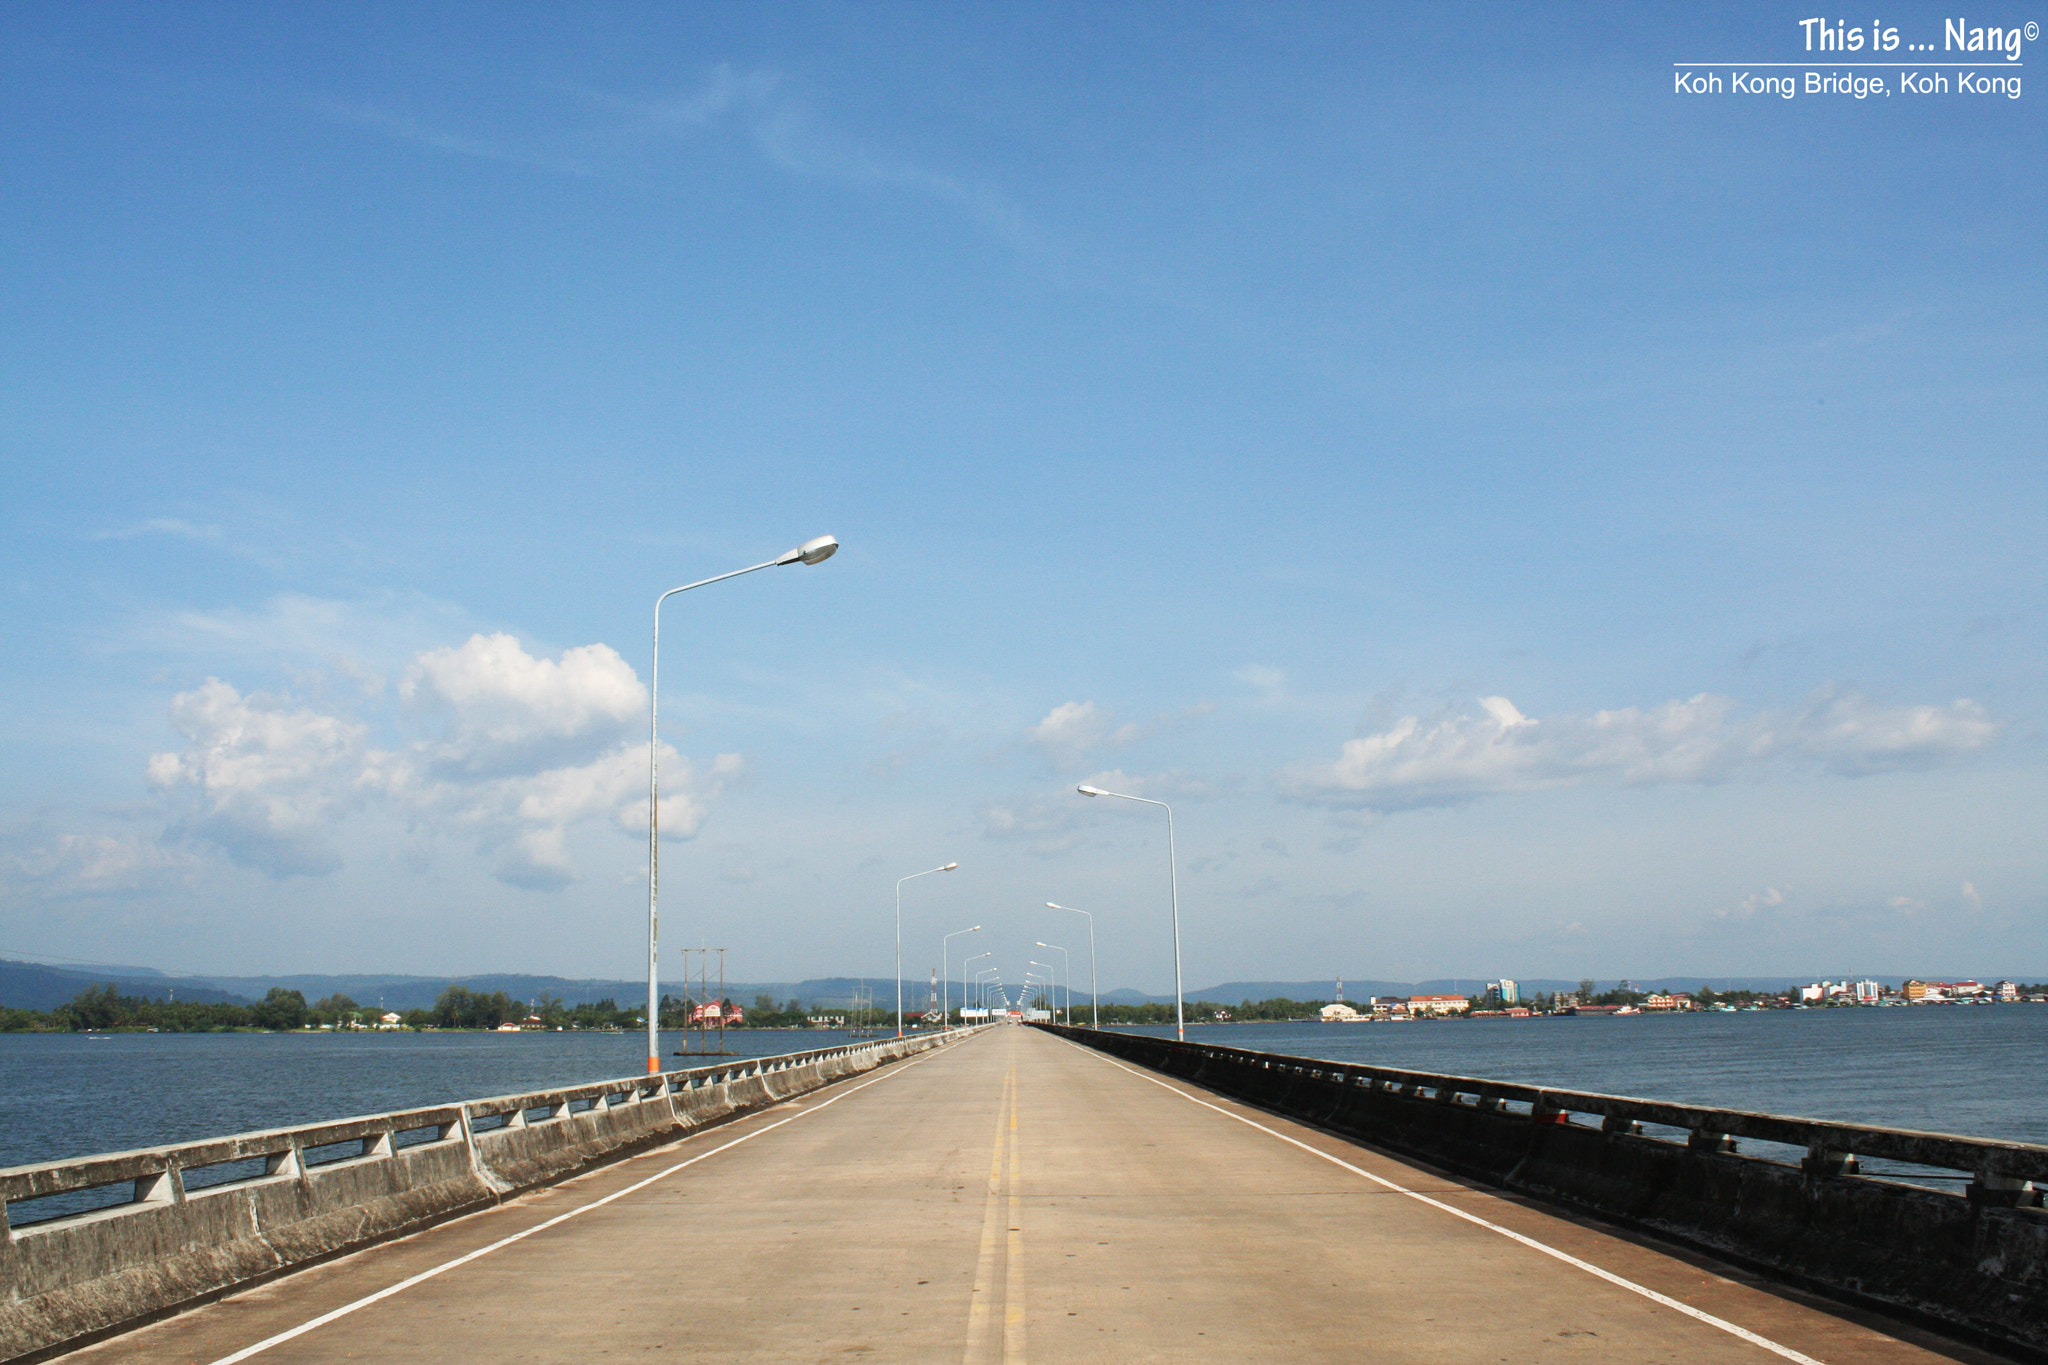 Photograph On the way go to Koh Kong city by Nang Ray on 500px